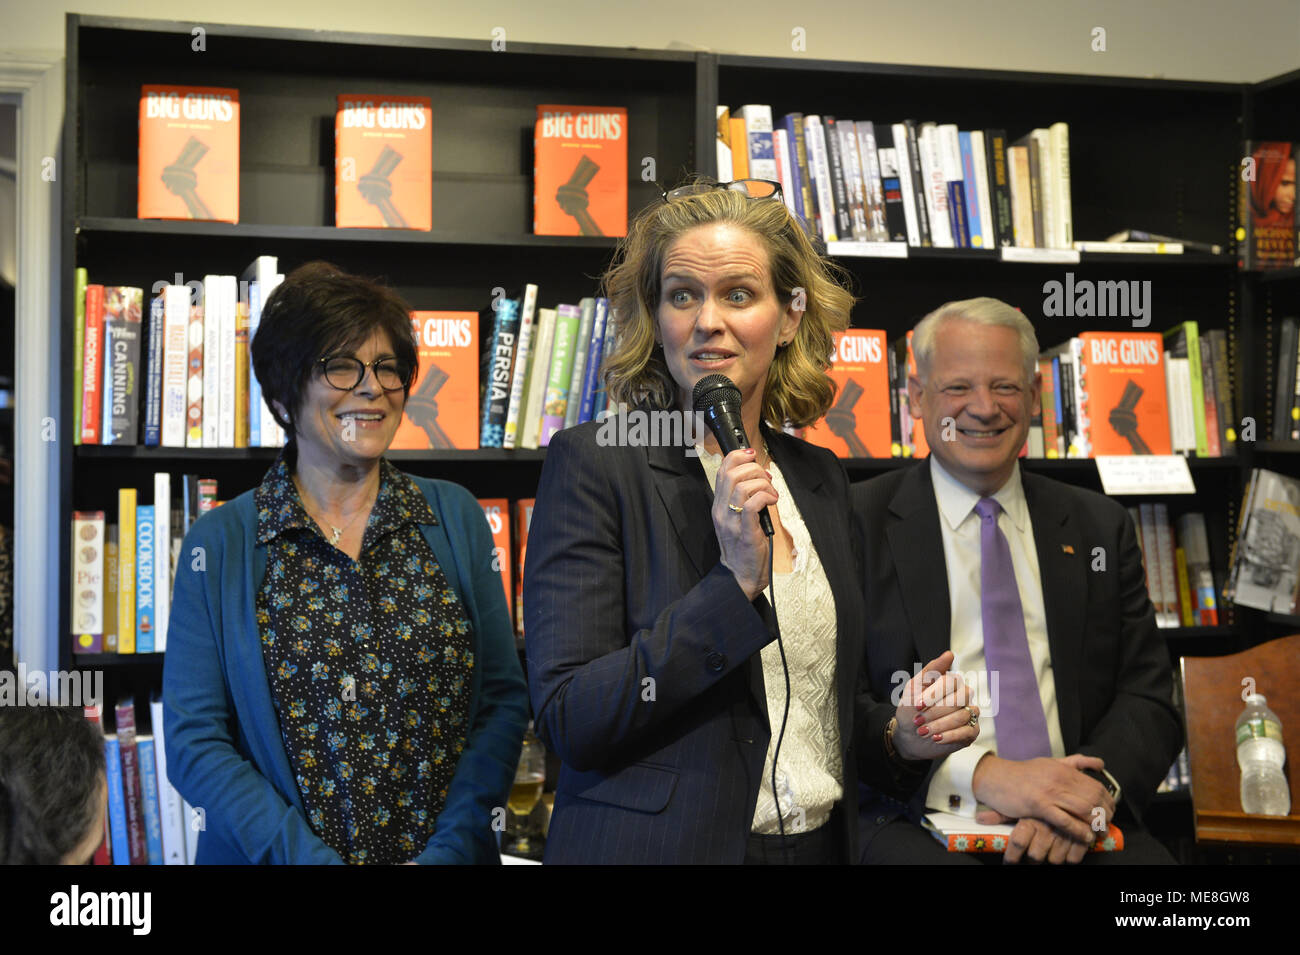 Rockville Centre, New York, USA. 20th Apr, 2018. At center, Nassau County Executive LAURA CURRAN briefly speaks, and L-R, RITA KESTENBAUM and Rep. STEVE ISRAEL smile, at start of special event for Nassau County debut of the former Congressman's (NY - Dem) newest novel BIG GUNS - a satire of the strong gun lobby, weak Congress, and a small Long Island town. Kestenbaum, who was the moderator, is a gun-control activist and former Hempstead Town Councilwoman whose daughter was shot to death at college. Credit: Ann Parry/ZUMA Wire/Alamy Live News - Stock Image